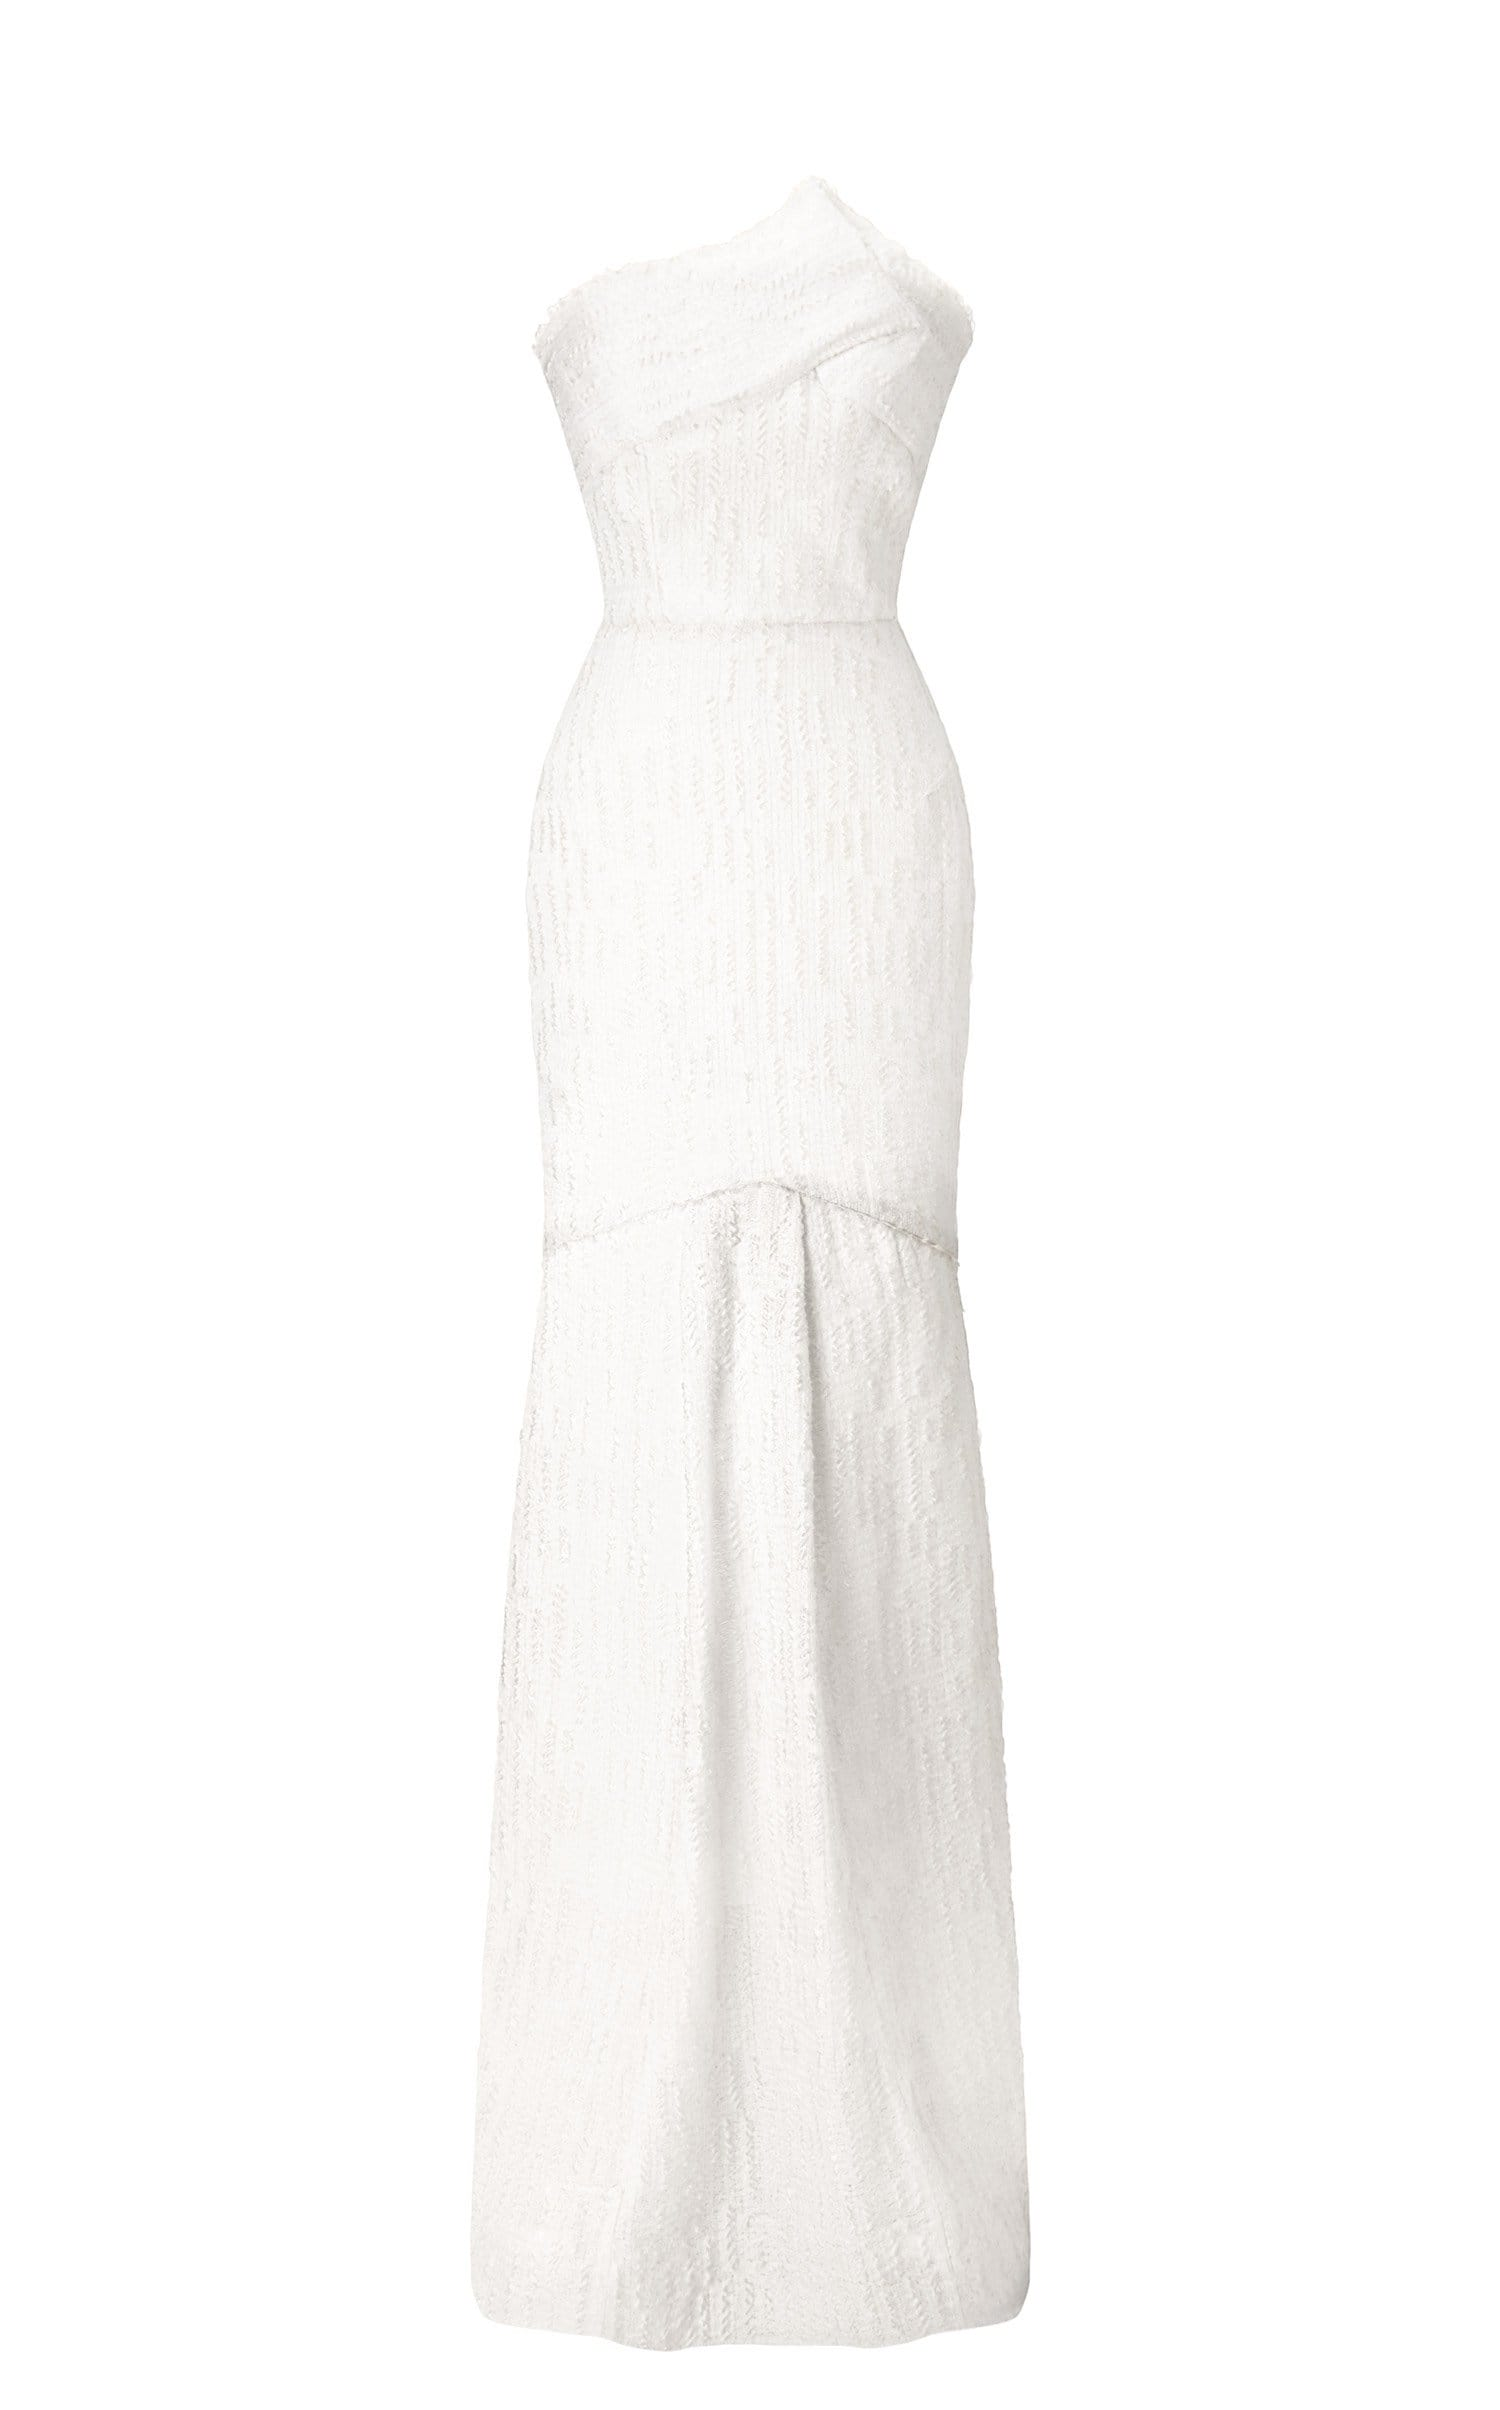 Turret Gown In White from Roland Mouret